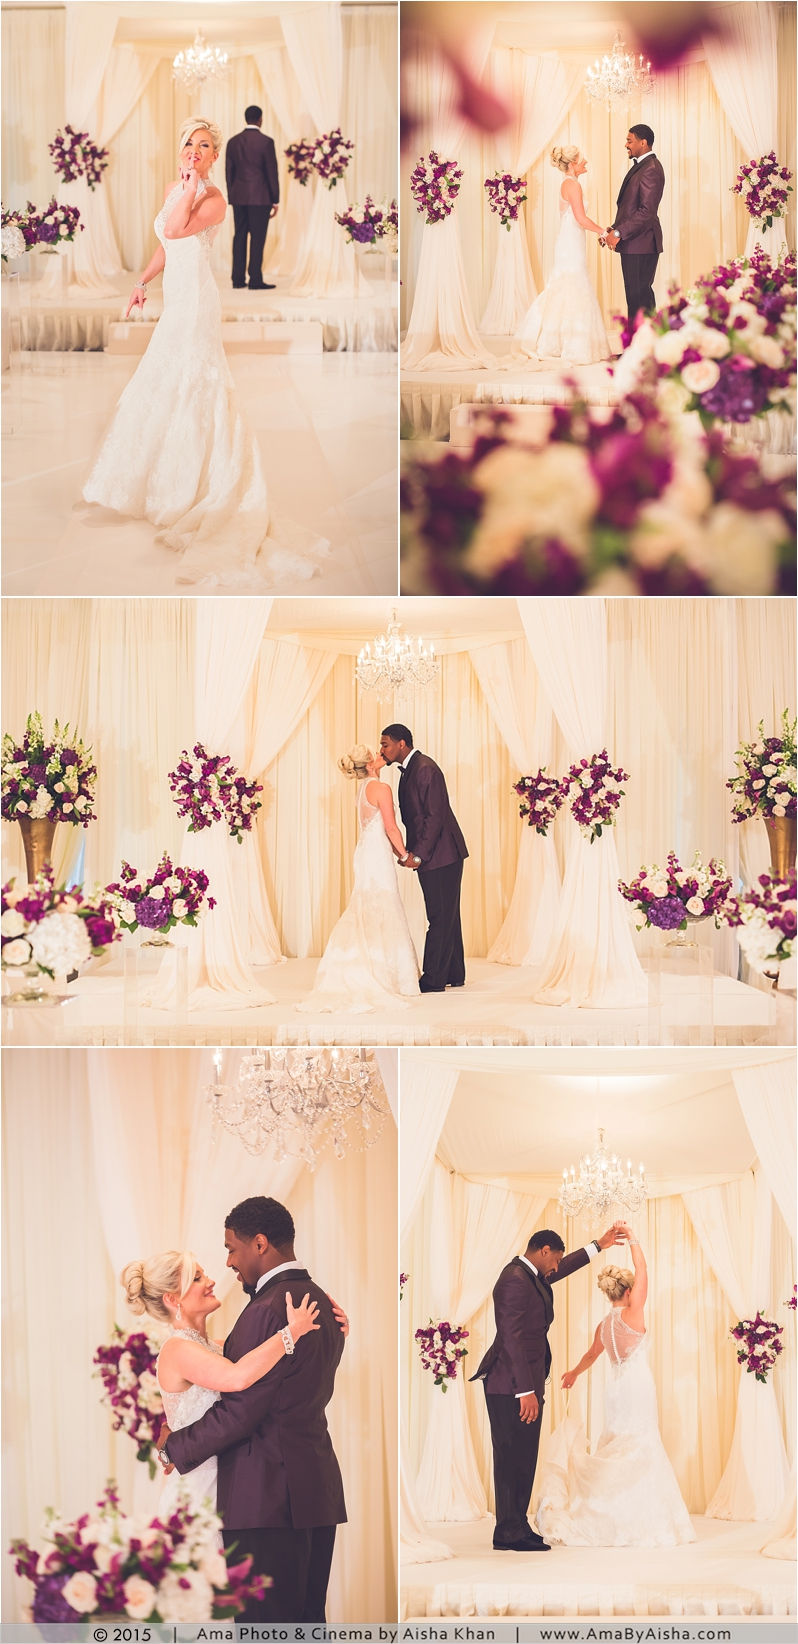 ©2015 | www.AmaByAisha.com | Bride and Groom first look! So cute!